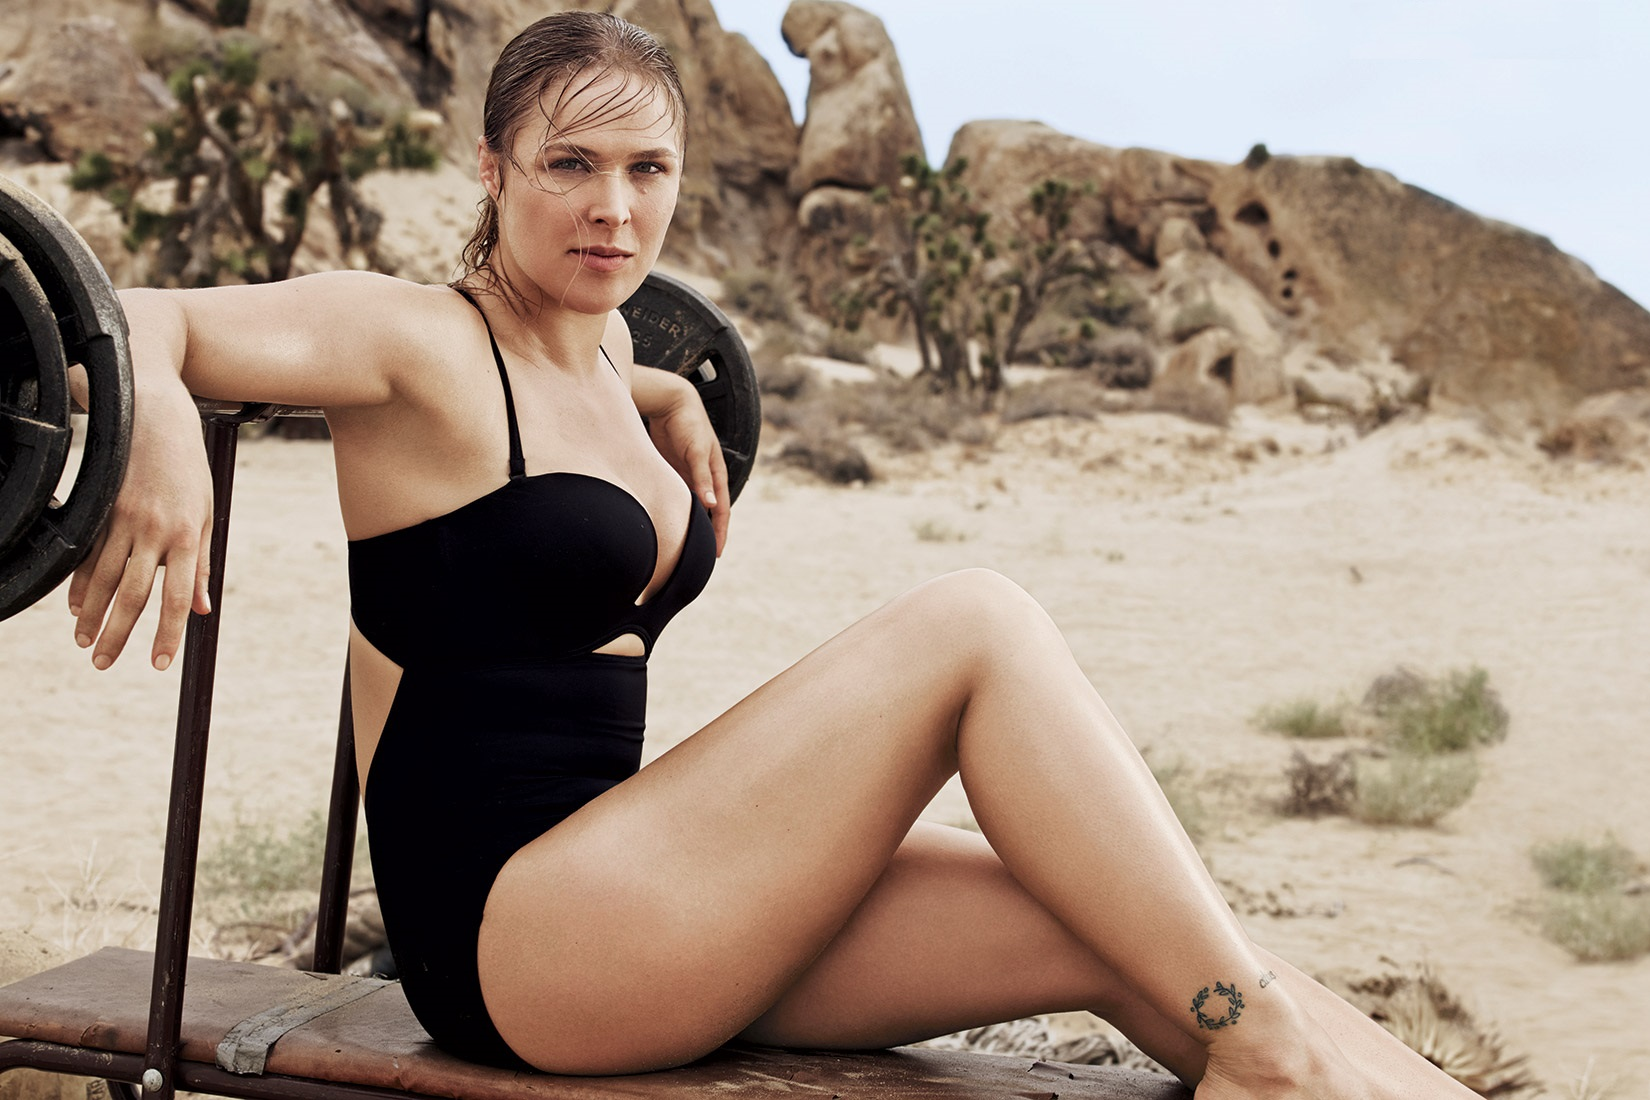 ronda-rousey-hot-photoshoot-in-bikini